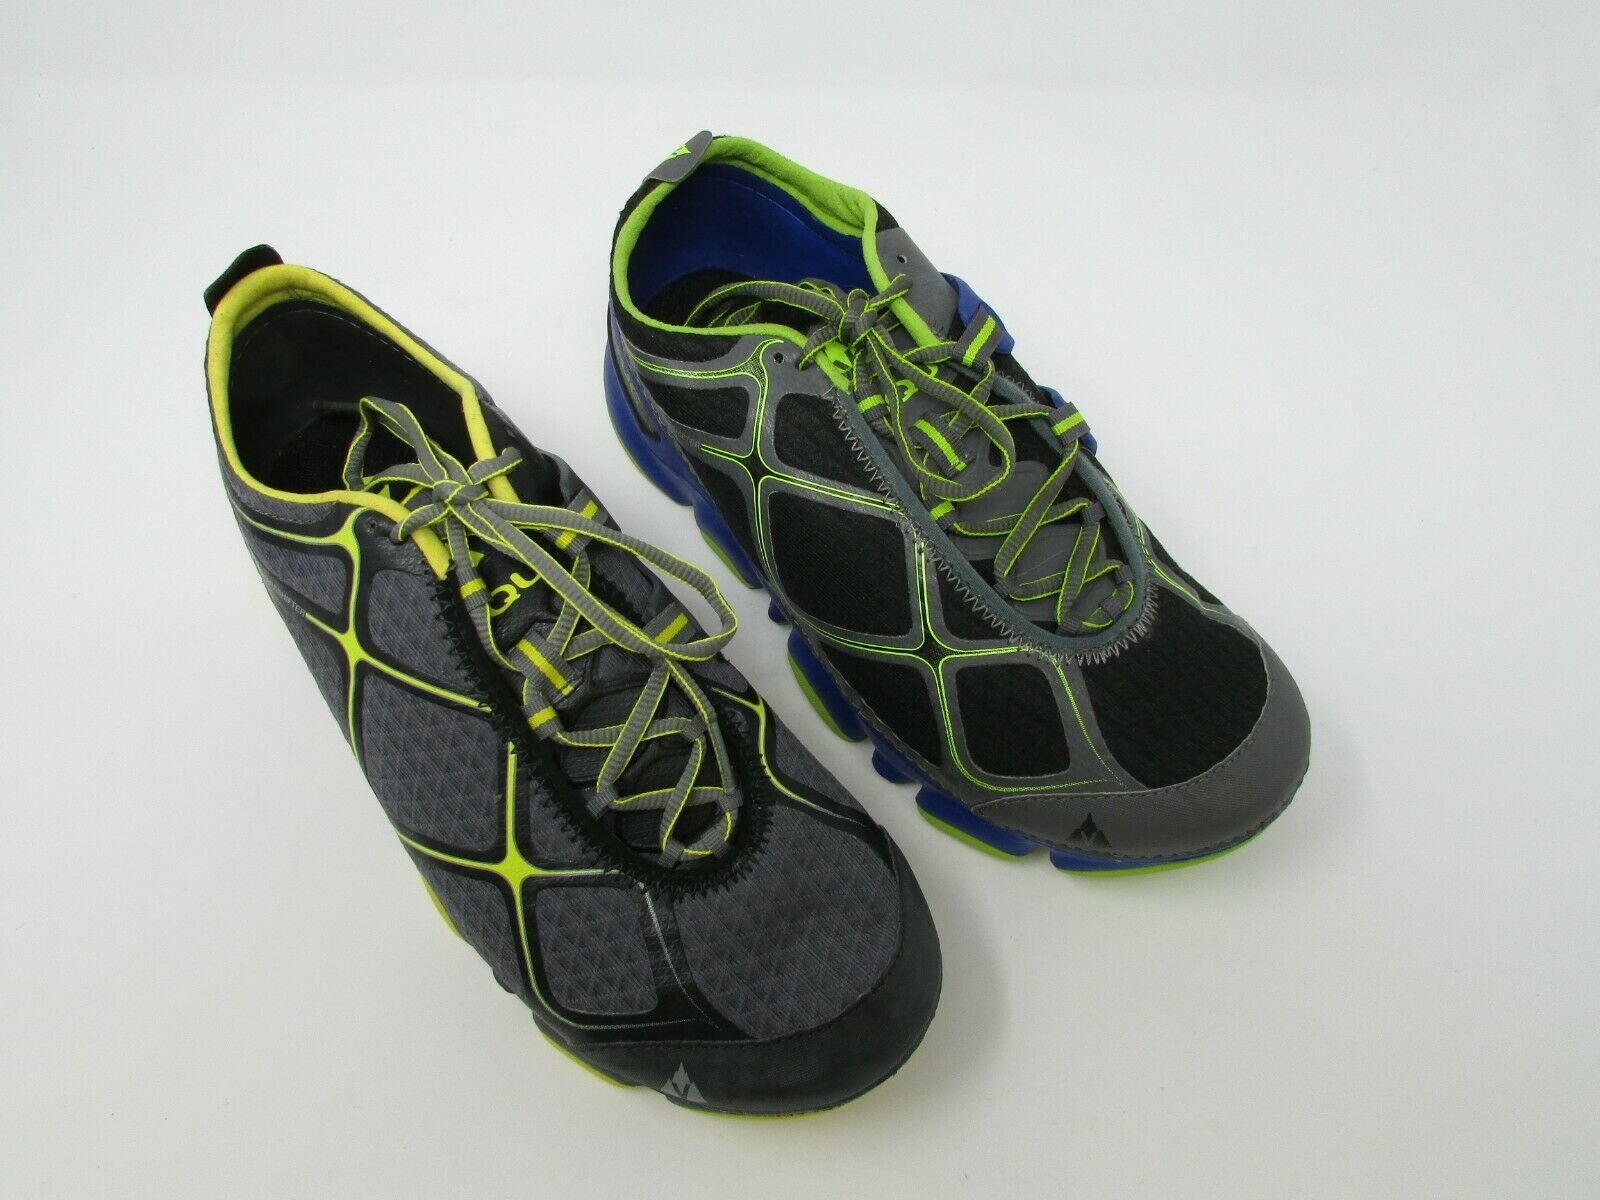 Men's Vasque Trailbender SST shoes, Size 10, Free Shipping  Discounted